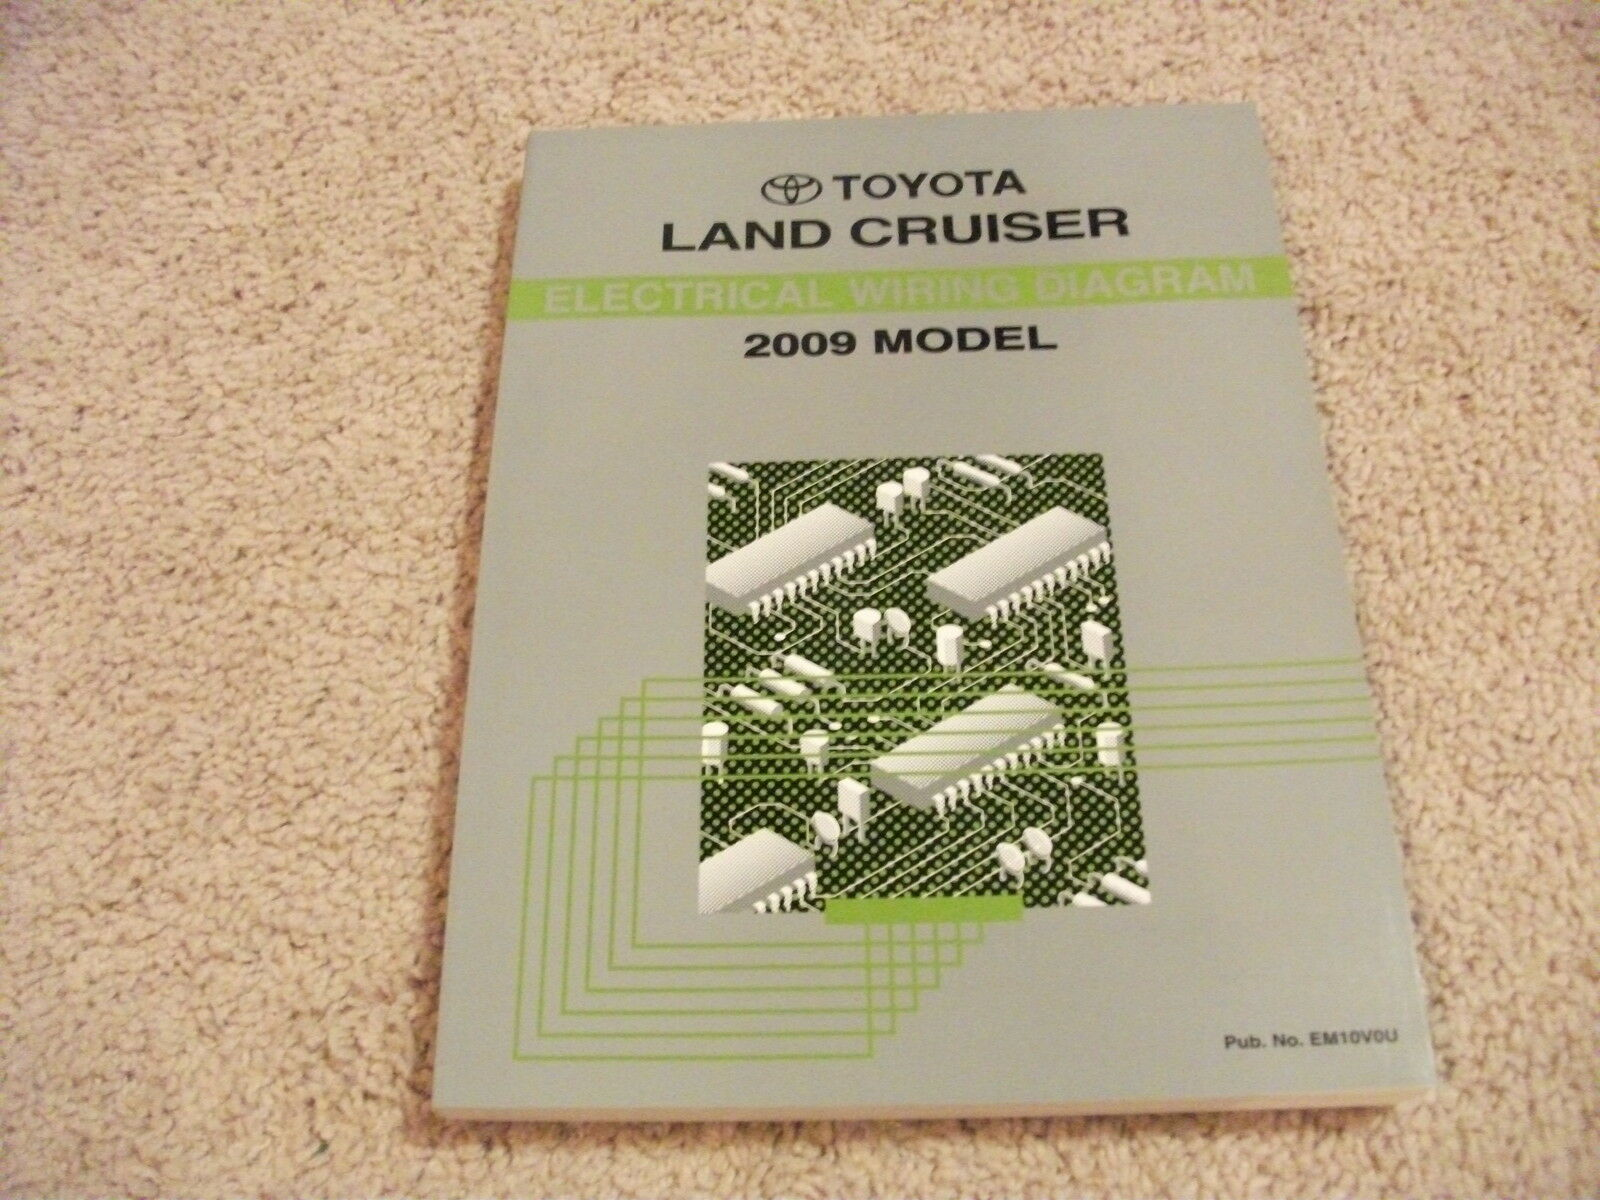 2009 Toyota Land Cruiser Electrical Wiring Diagram Manual Oem 1994 1 Of 1only 4 Available